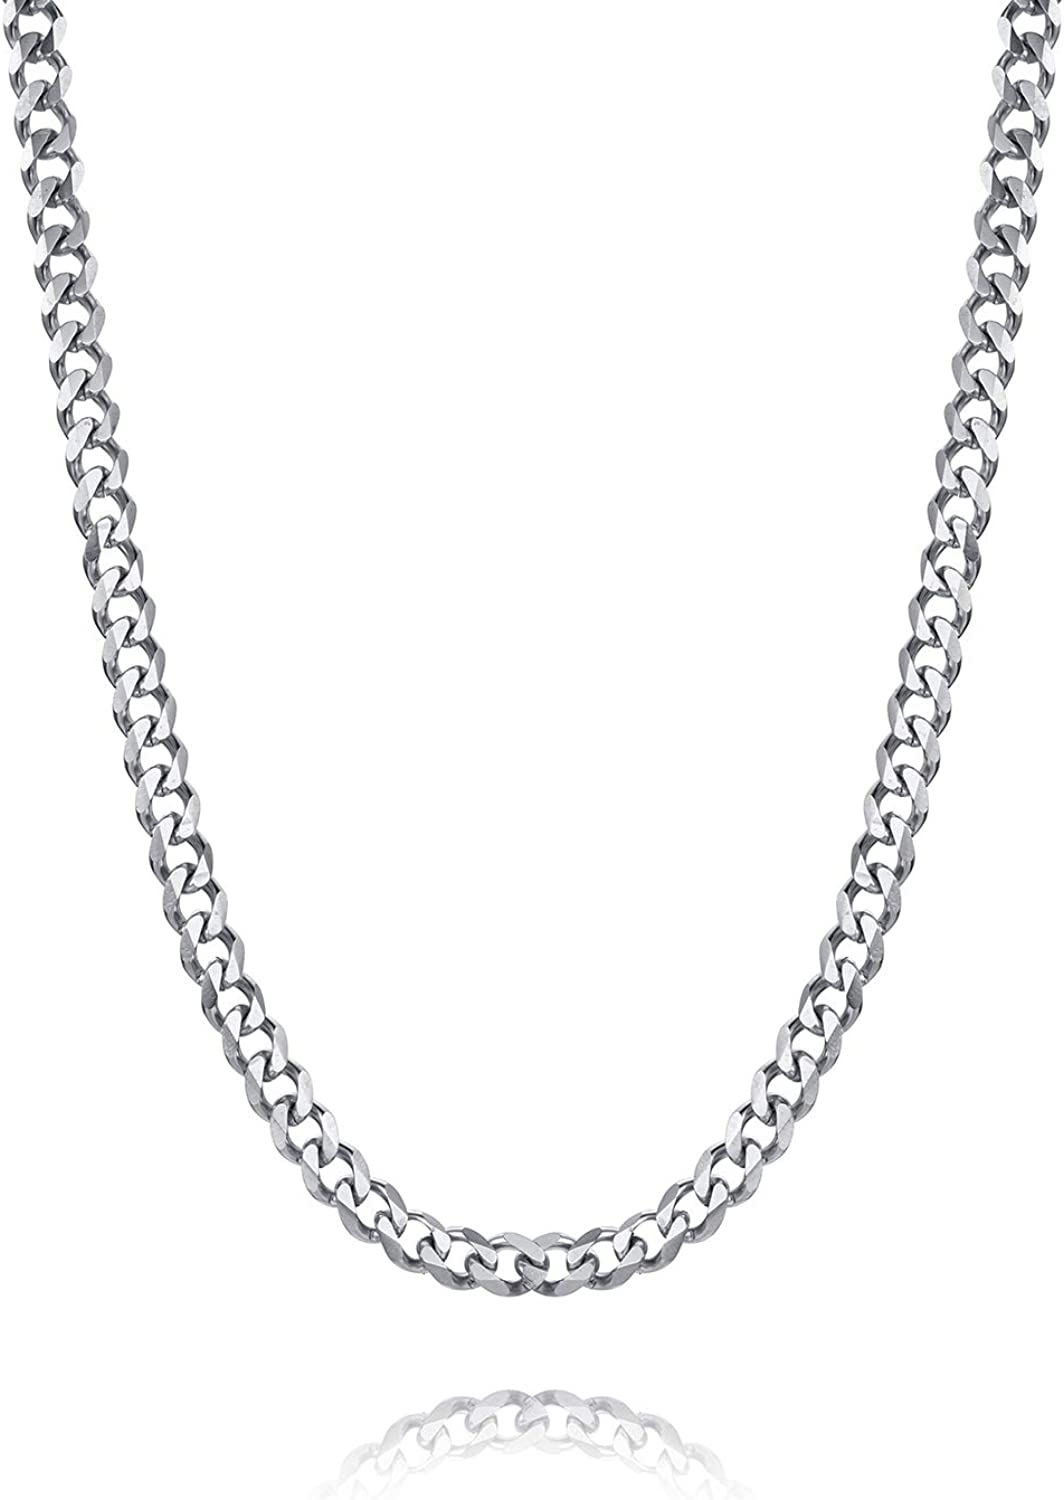 LIUANAN Chunky Cuban Chain Outlet SALE Necklace for 4 Men Save money 6 Width Women 9mm